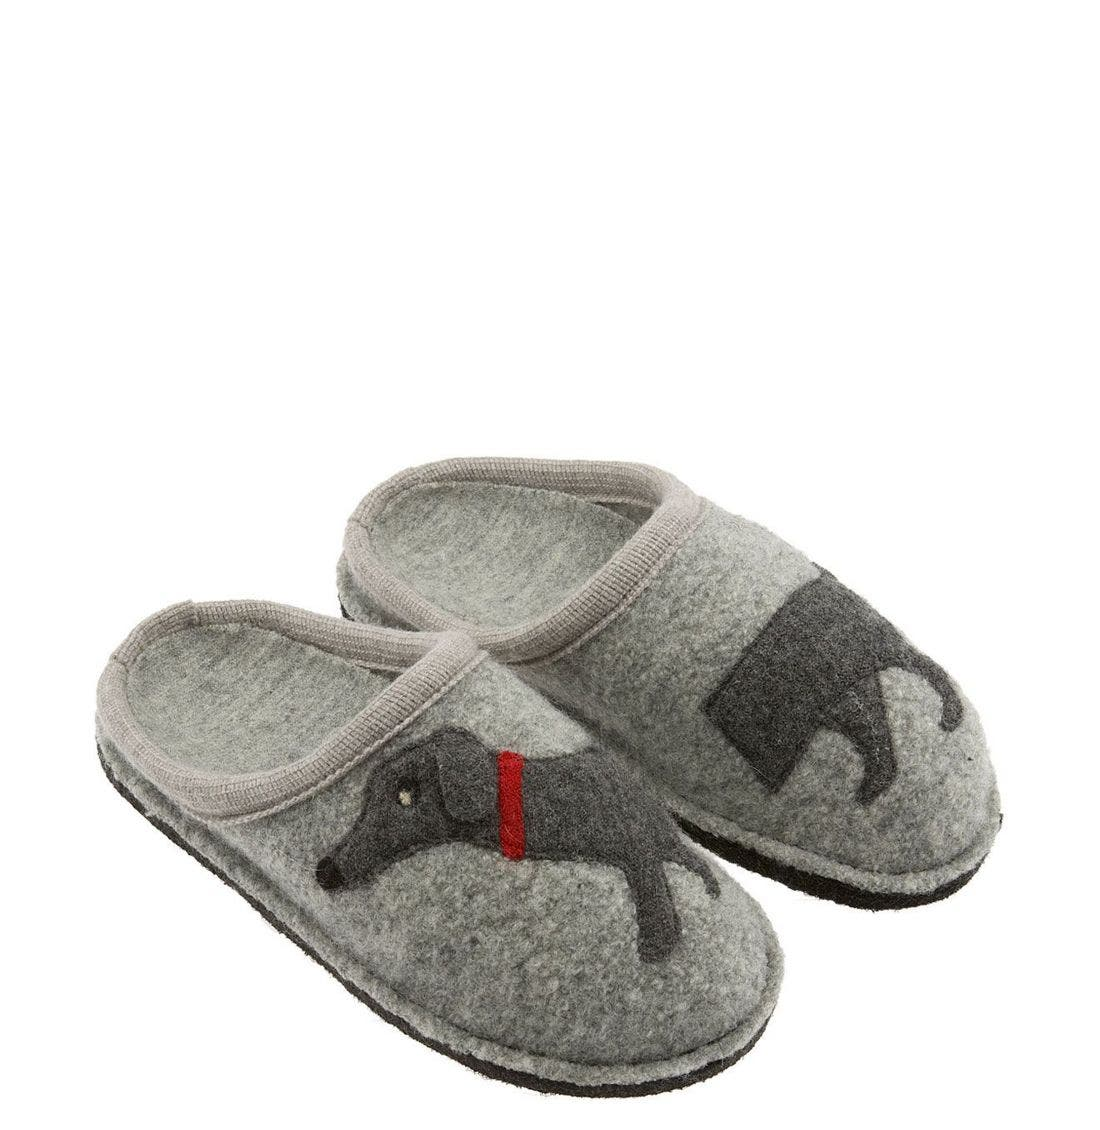 'Doggy' Slipper,                             Main thumbnail 1, color,                             Grey